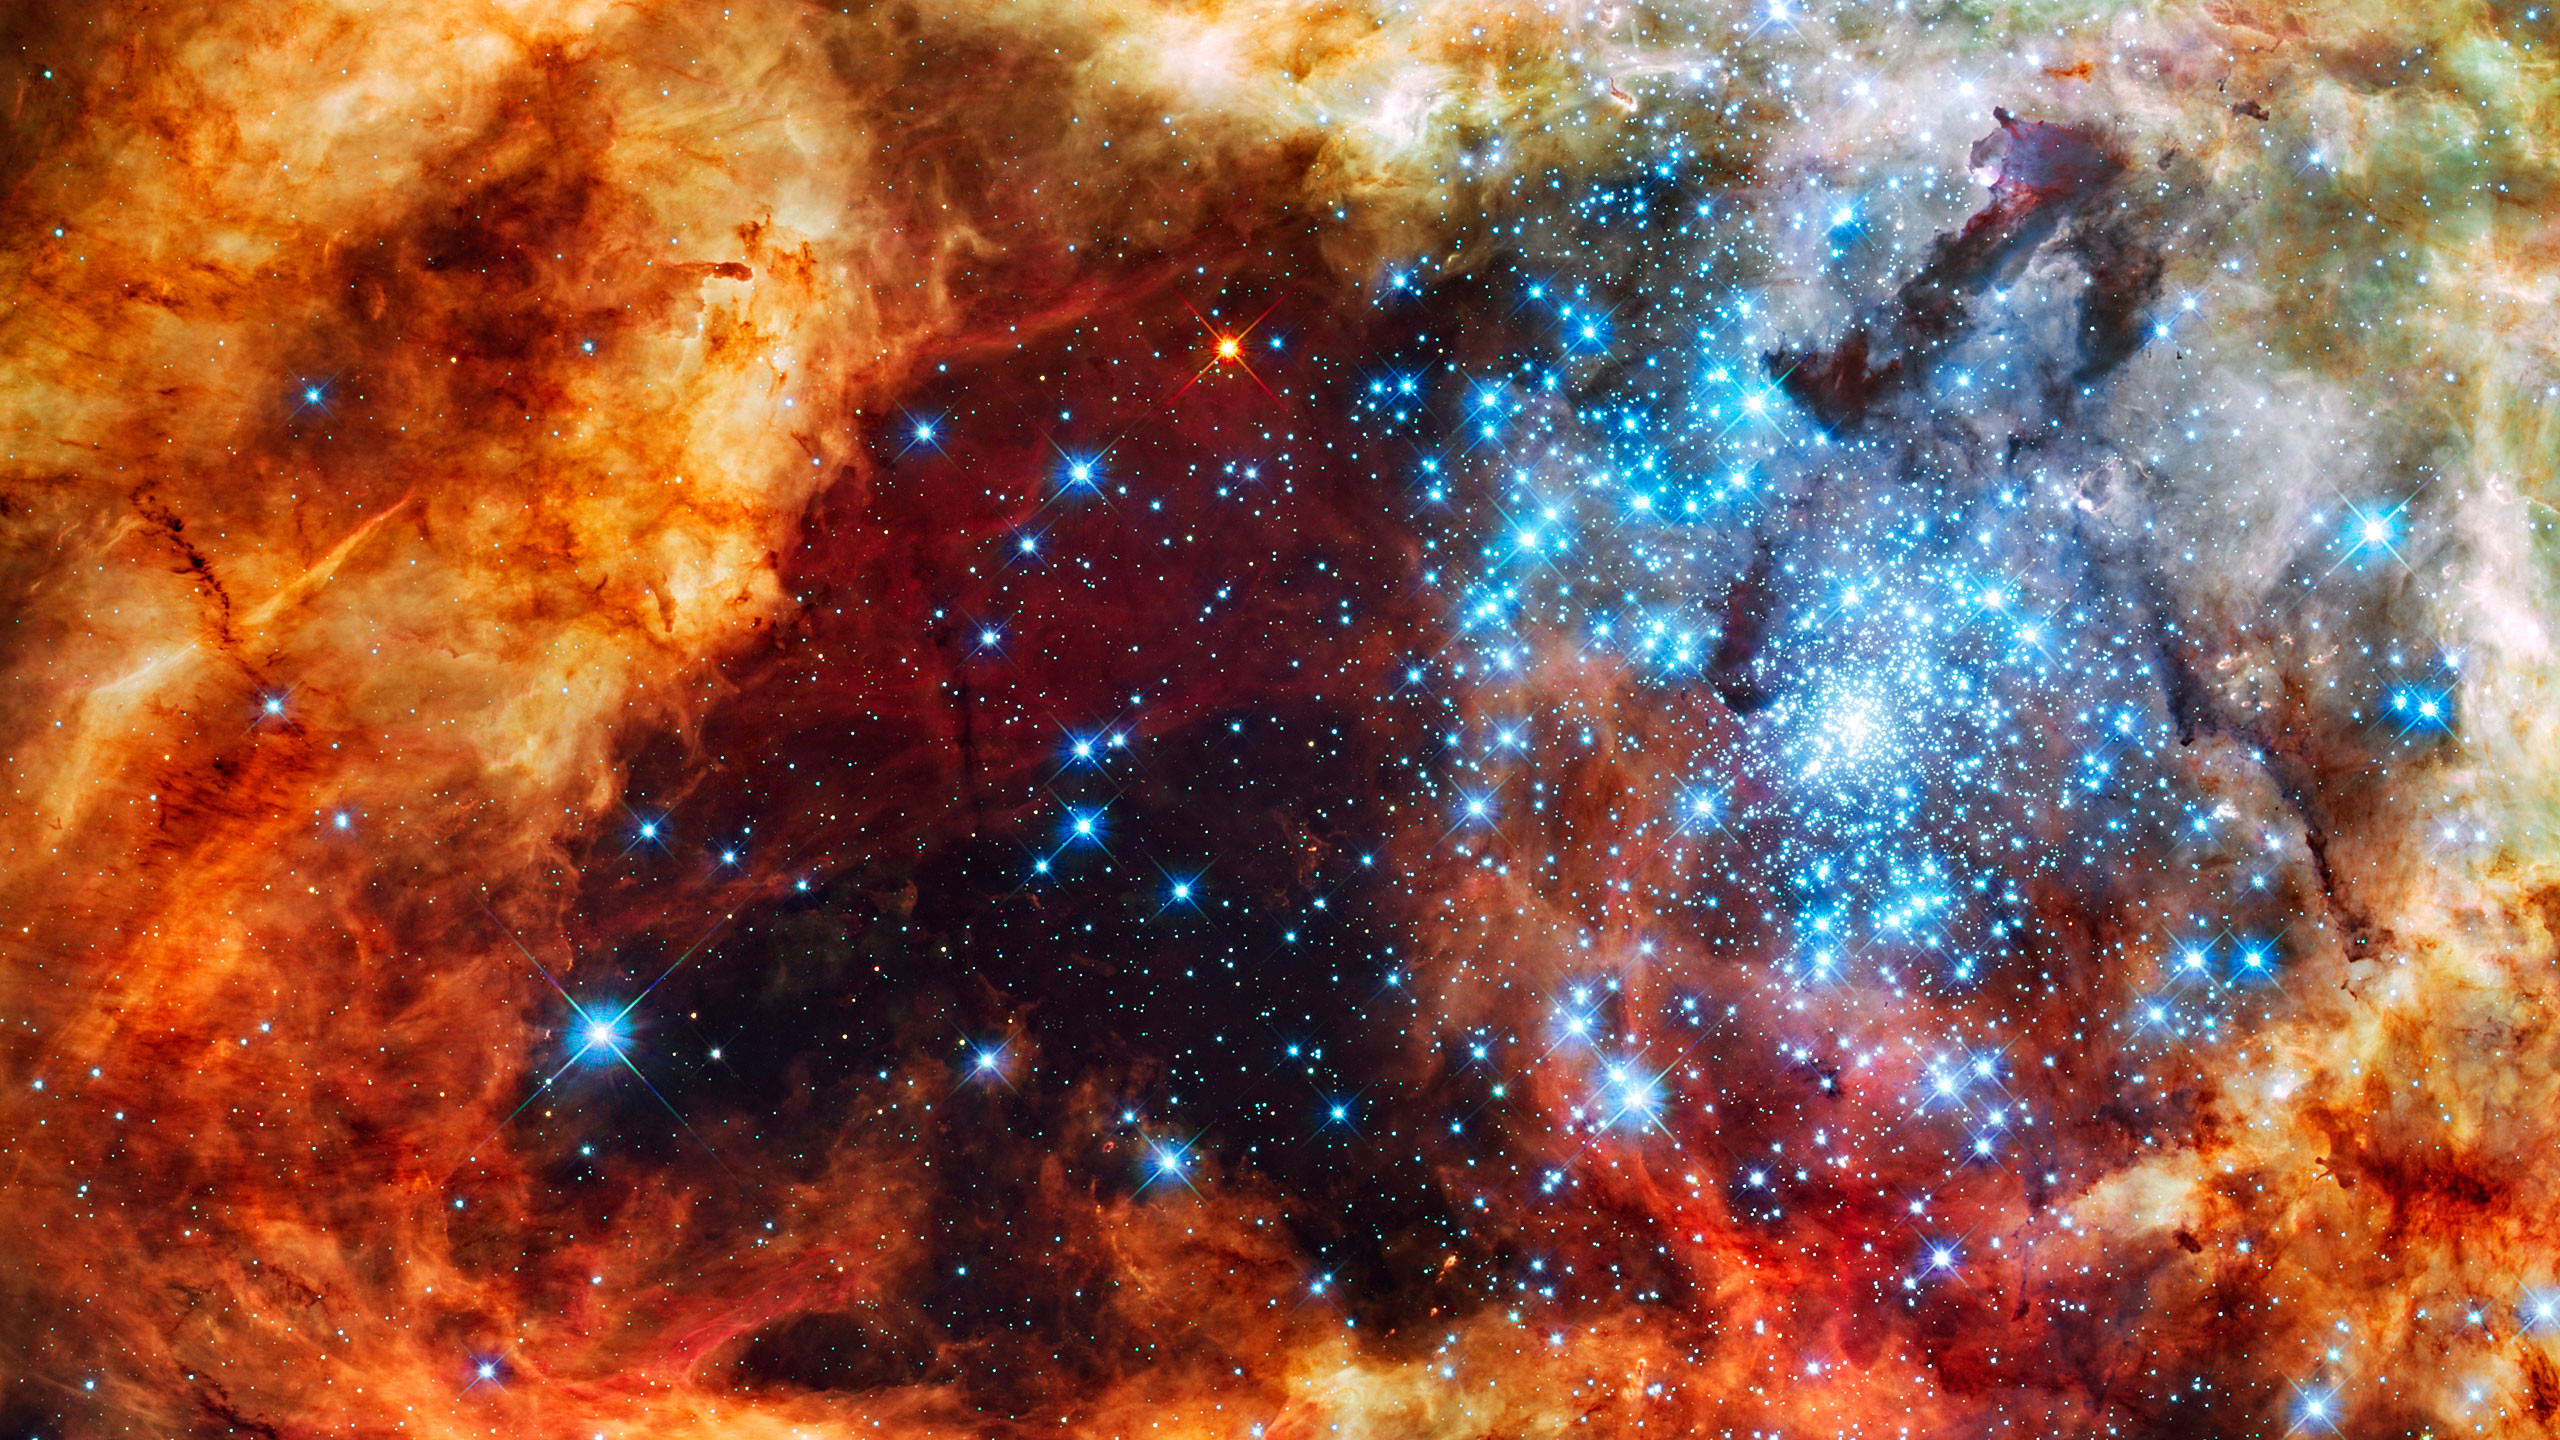 Hubble Wallpapers High Res.